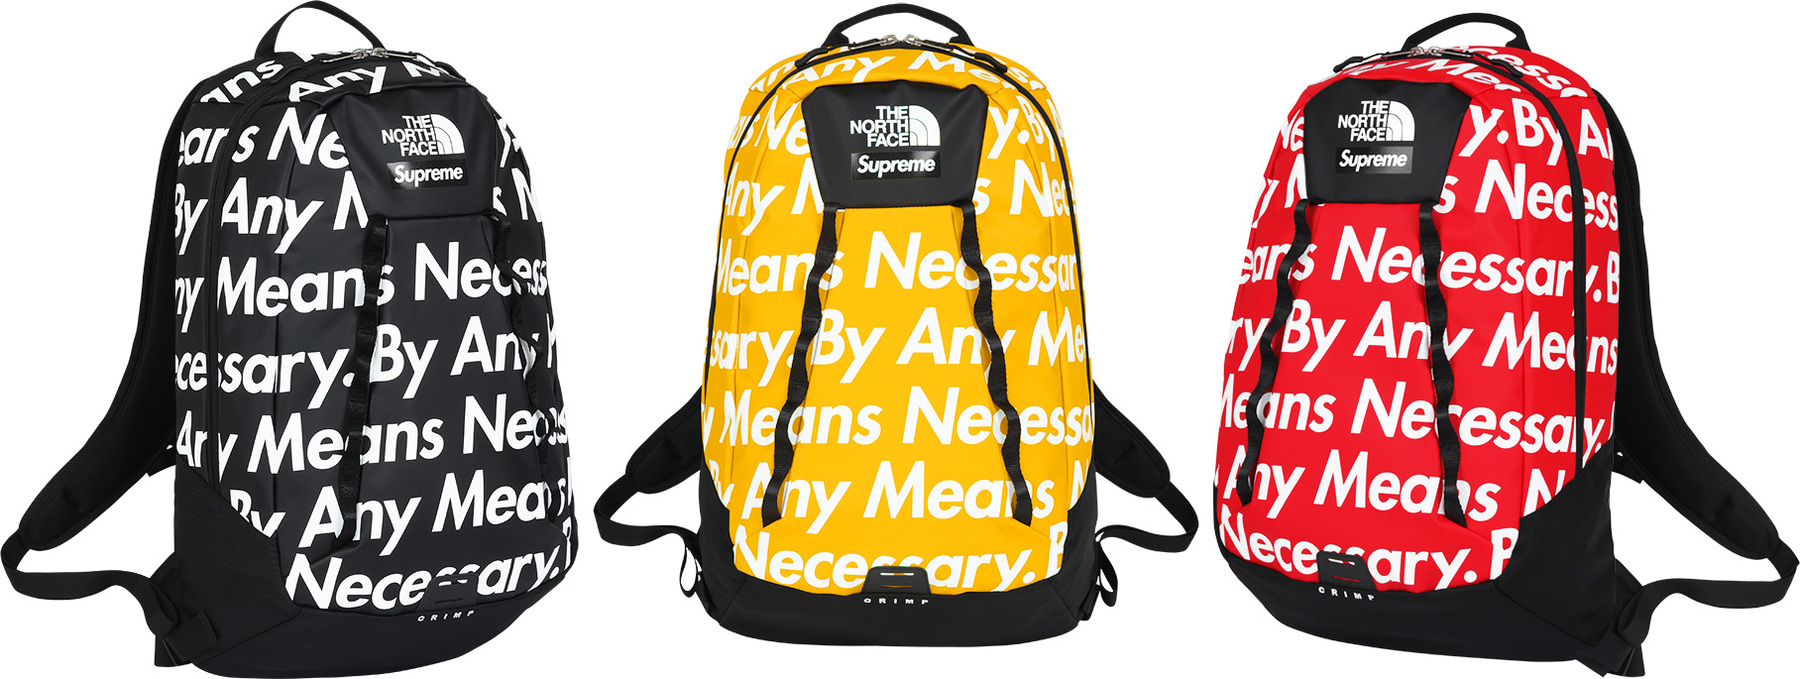 6a7d7fd2a North Face Supreme Backpack Big Haul - CEAGESP